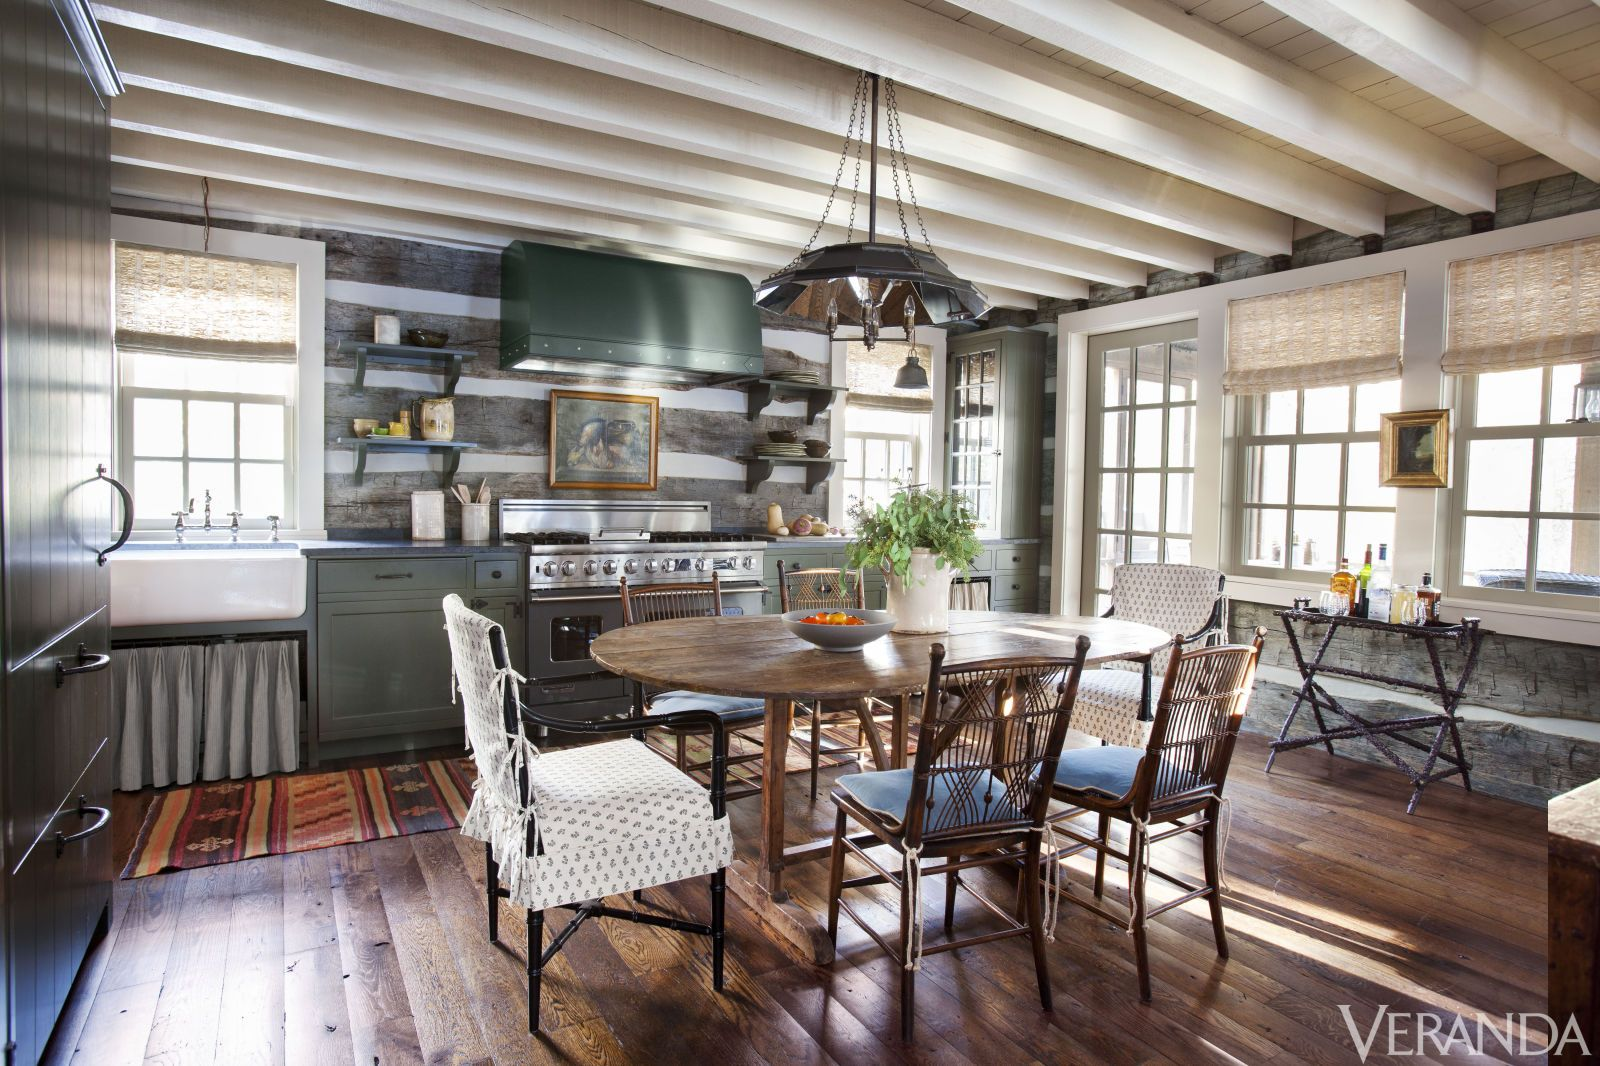 HOUSE TOUR: A Pair Of 1840s Log Cabins Is Reimagined Into One ...